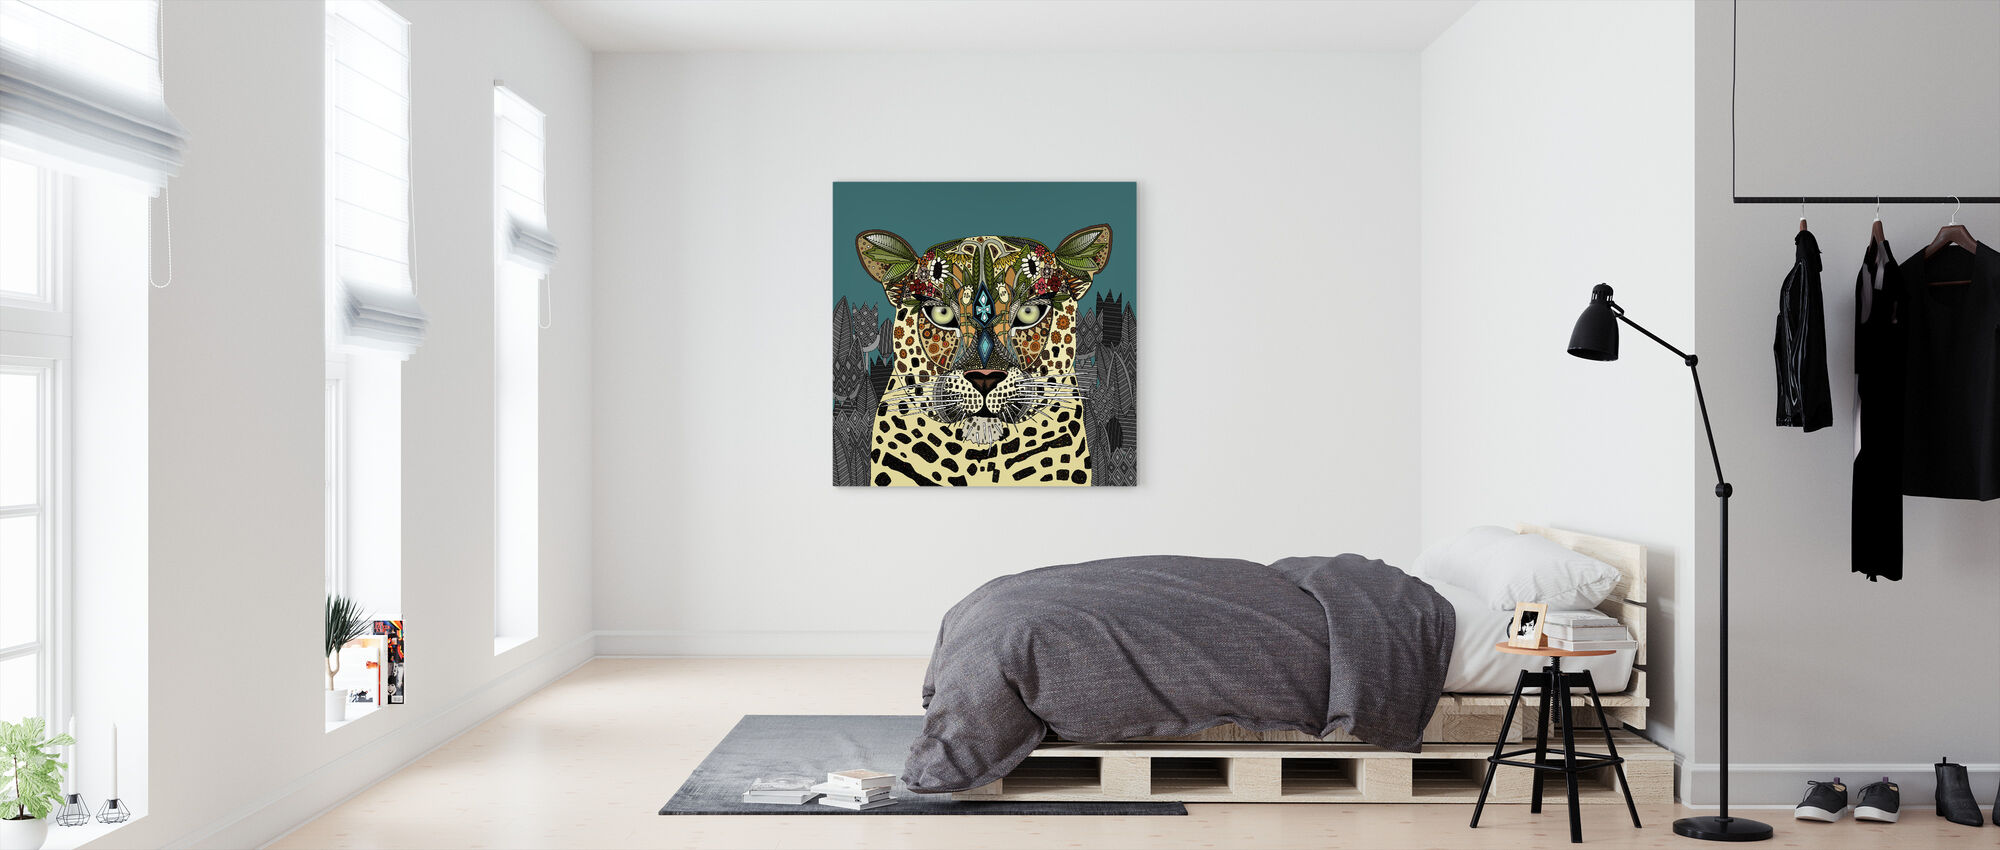 Leopard Queen Teal - Canvas print - Bedroom